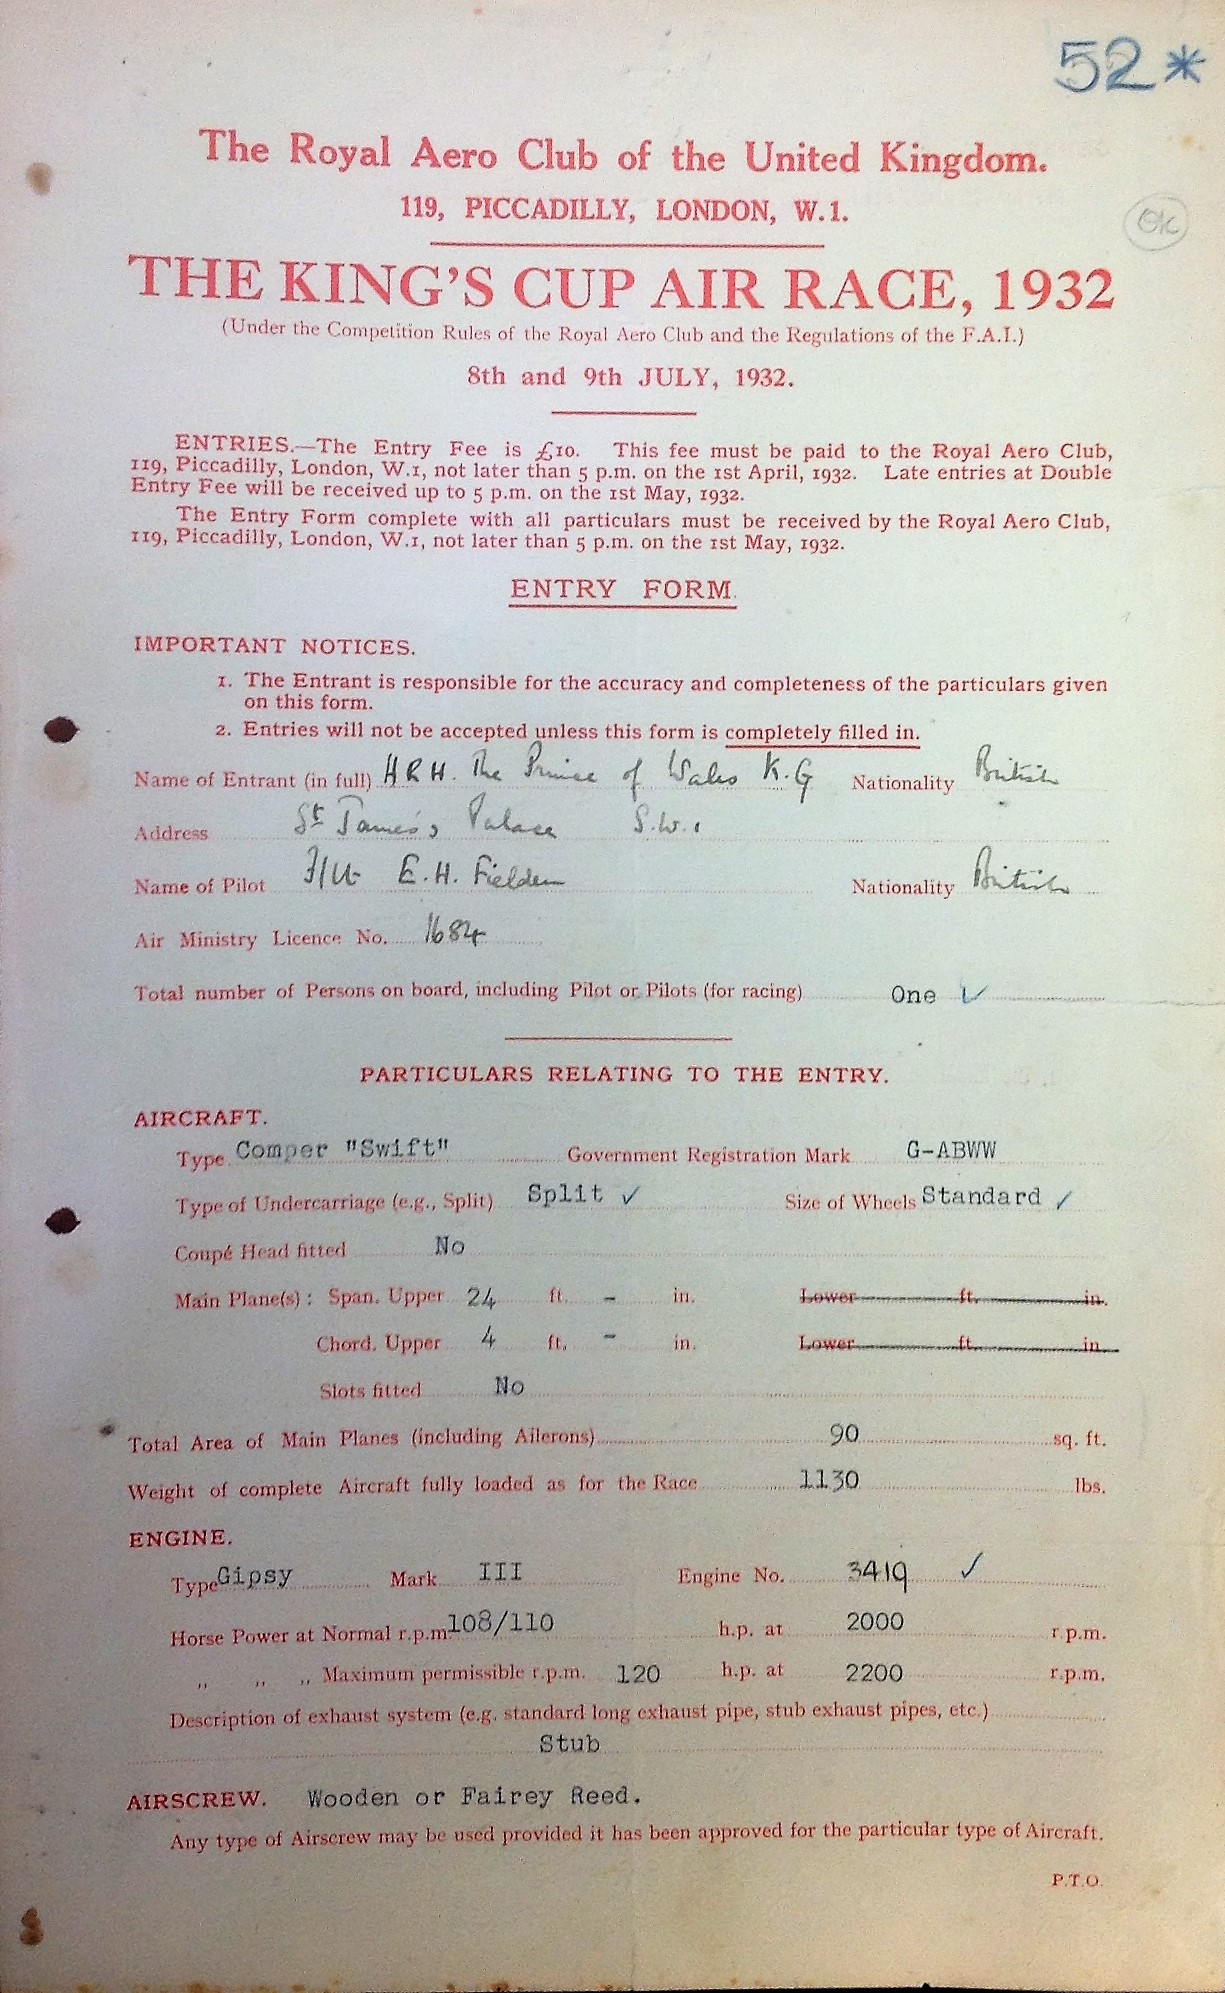 Lot 9 - Edward VIII signed original 1932 Entry form for the Kings Cup Air Race 1932. Amazing document on